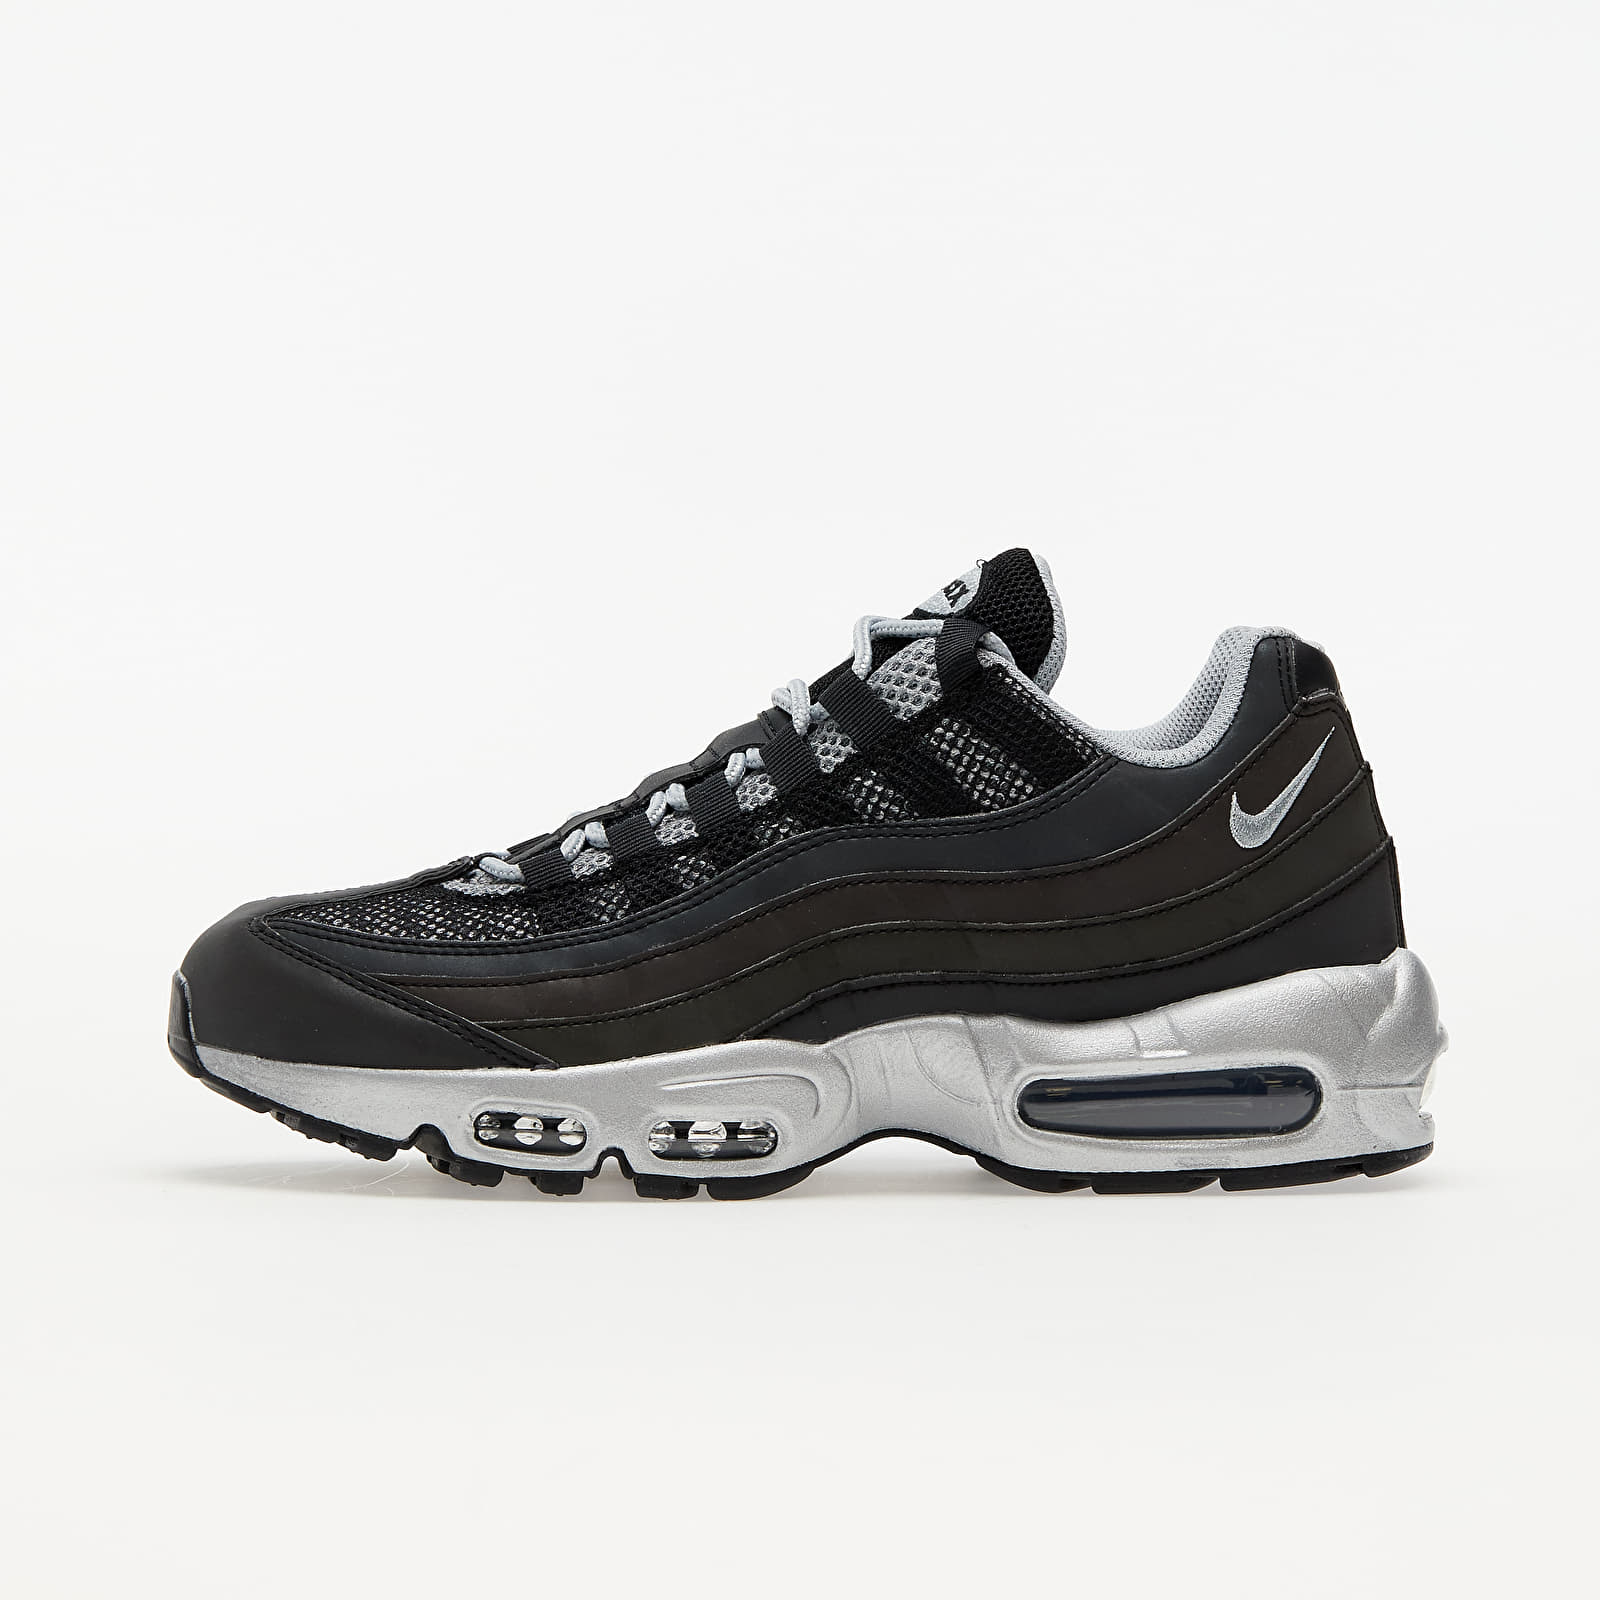 Nike Air Max 95 Premium Black/ Metallic Silver-Game Royal EUR 45